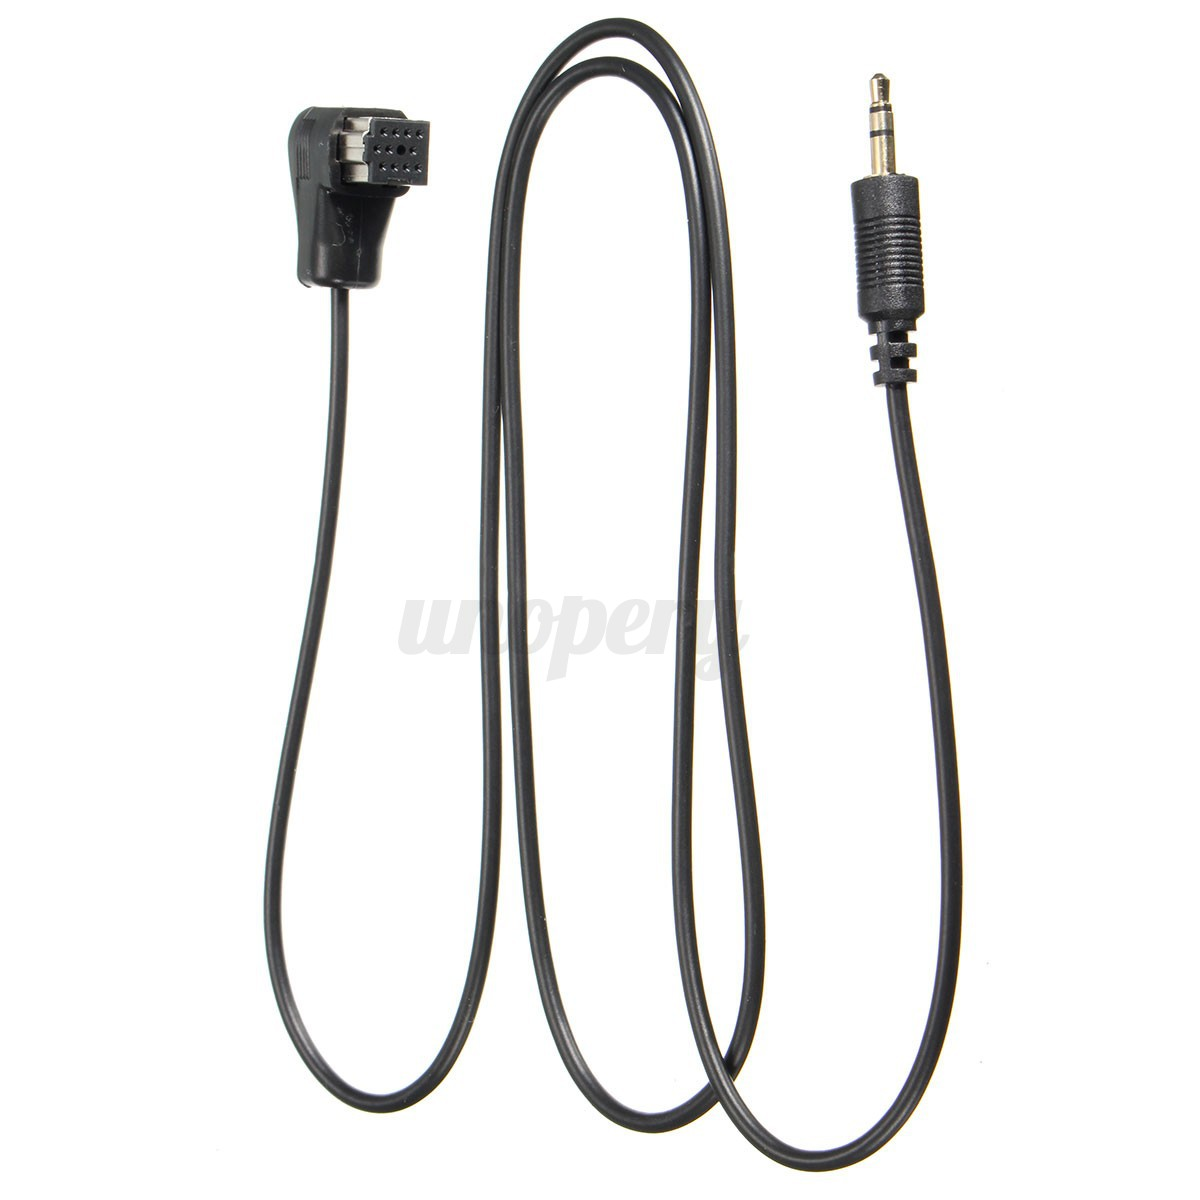 3 5mm Aux Input Cable To Car Pioneer Stereo Headunit Ip Bus Input Adapter Cable